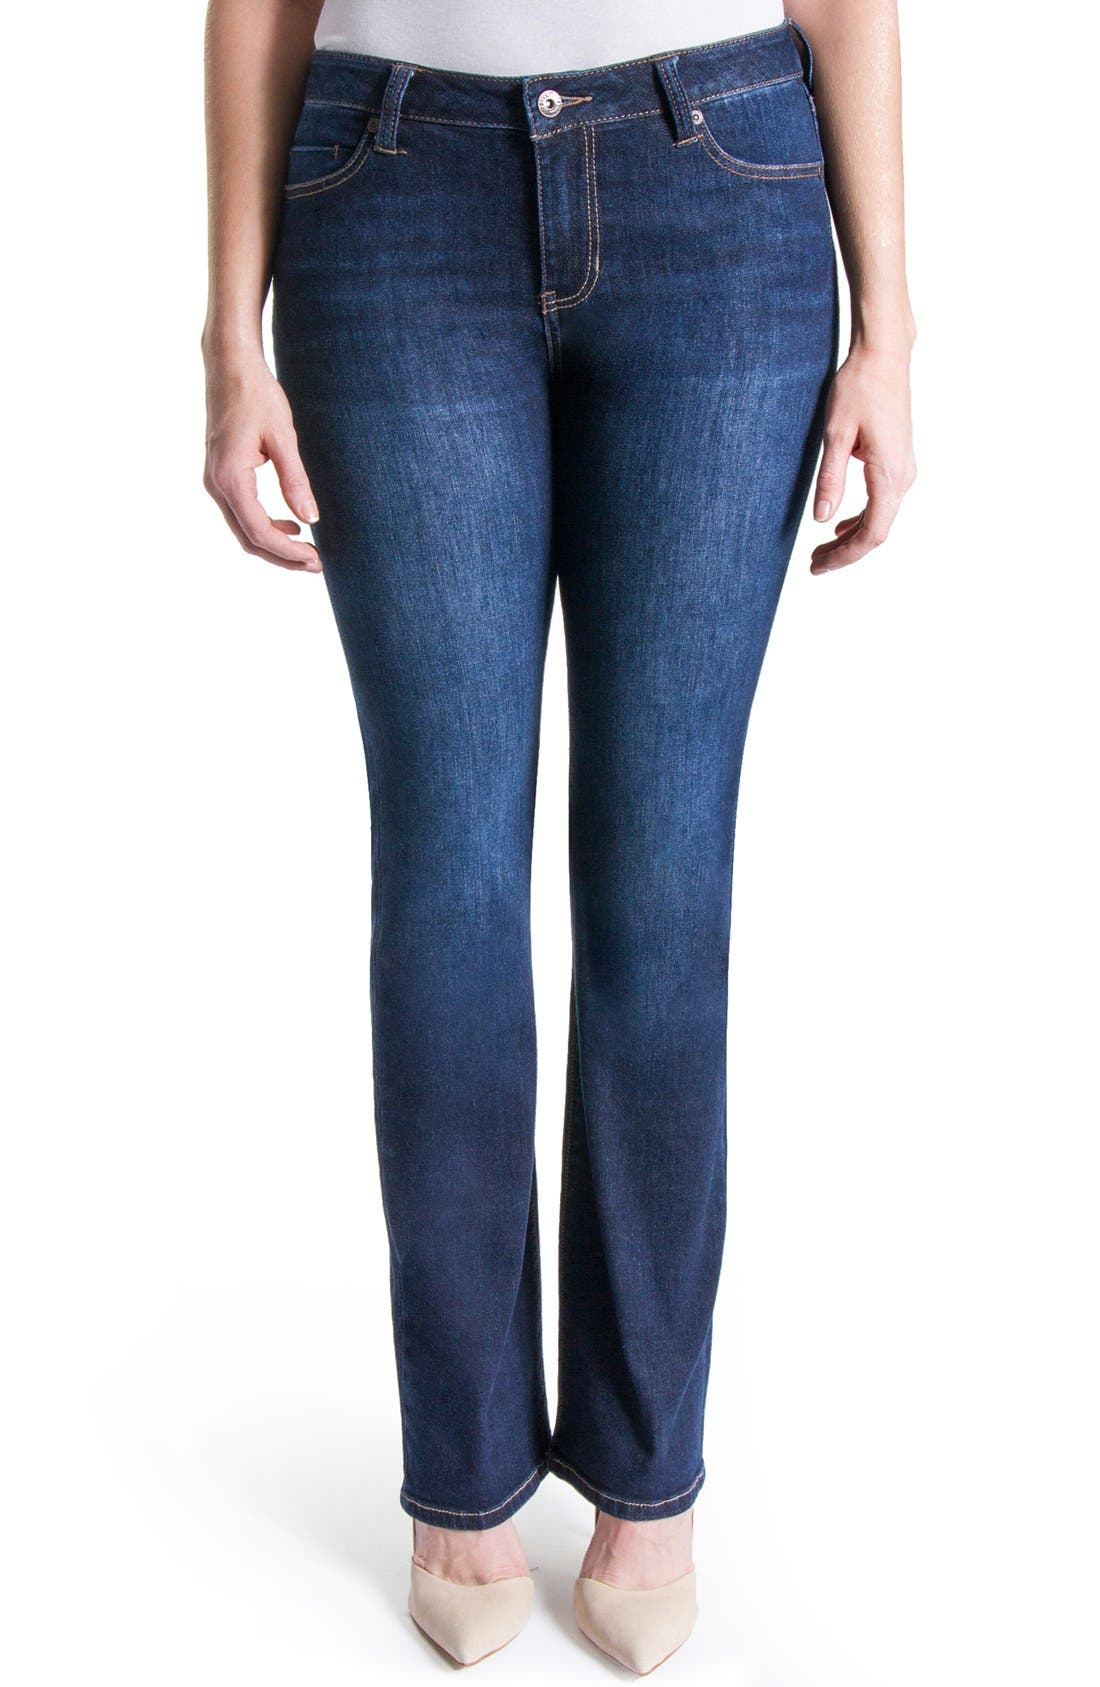 LIVERPOOL JEANS COMPANY Lucy Stretch Bootcut Jeans